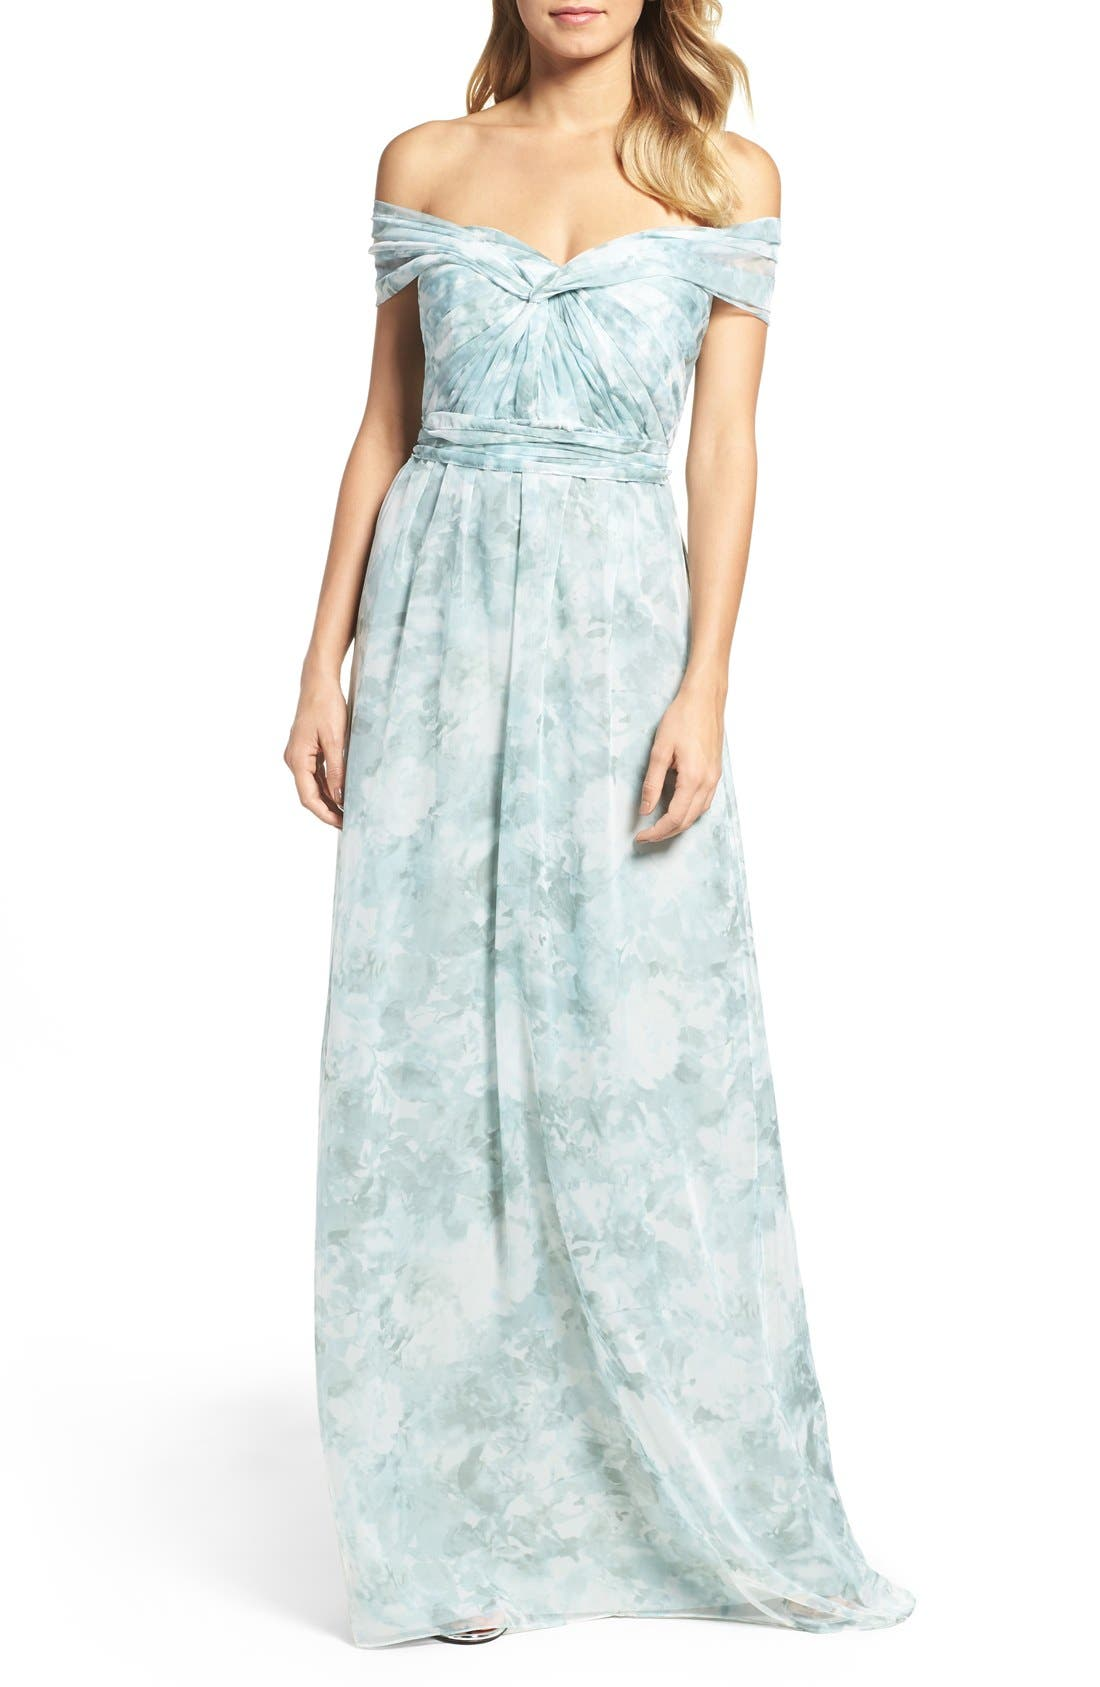 Alternate Image 1 Selected - Jenny Yoo 'Nyla' Floral Print Convertible Strapless Chiffon Gown